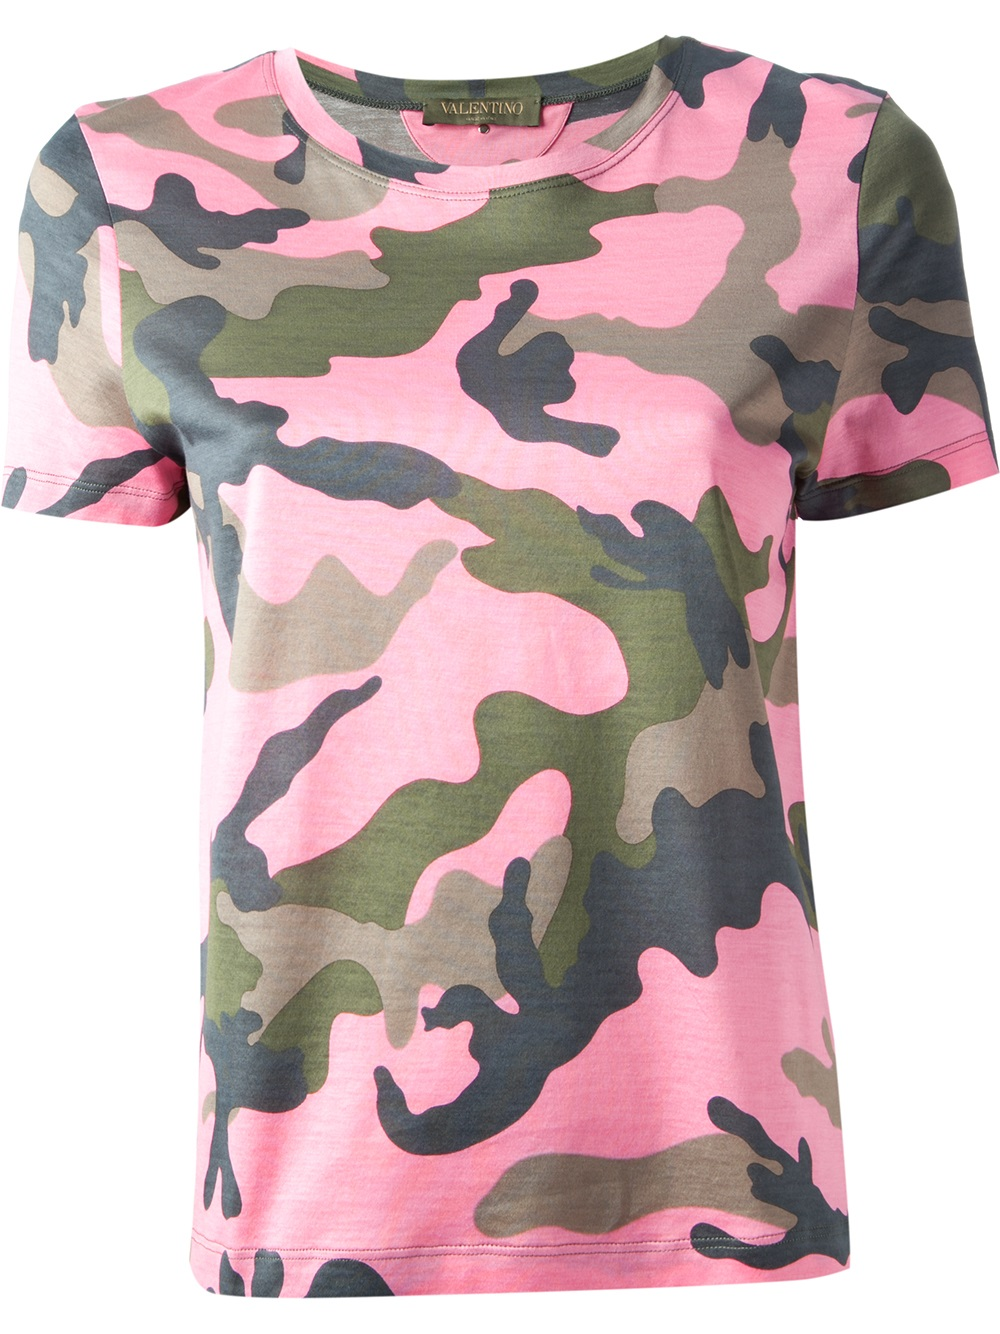 Camo pink shirts custom shirt for Camouflage t shirt design